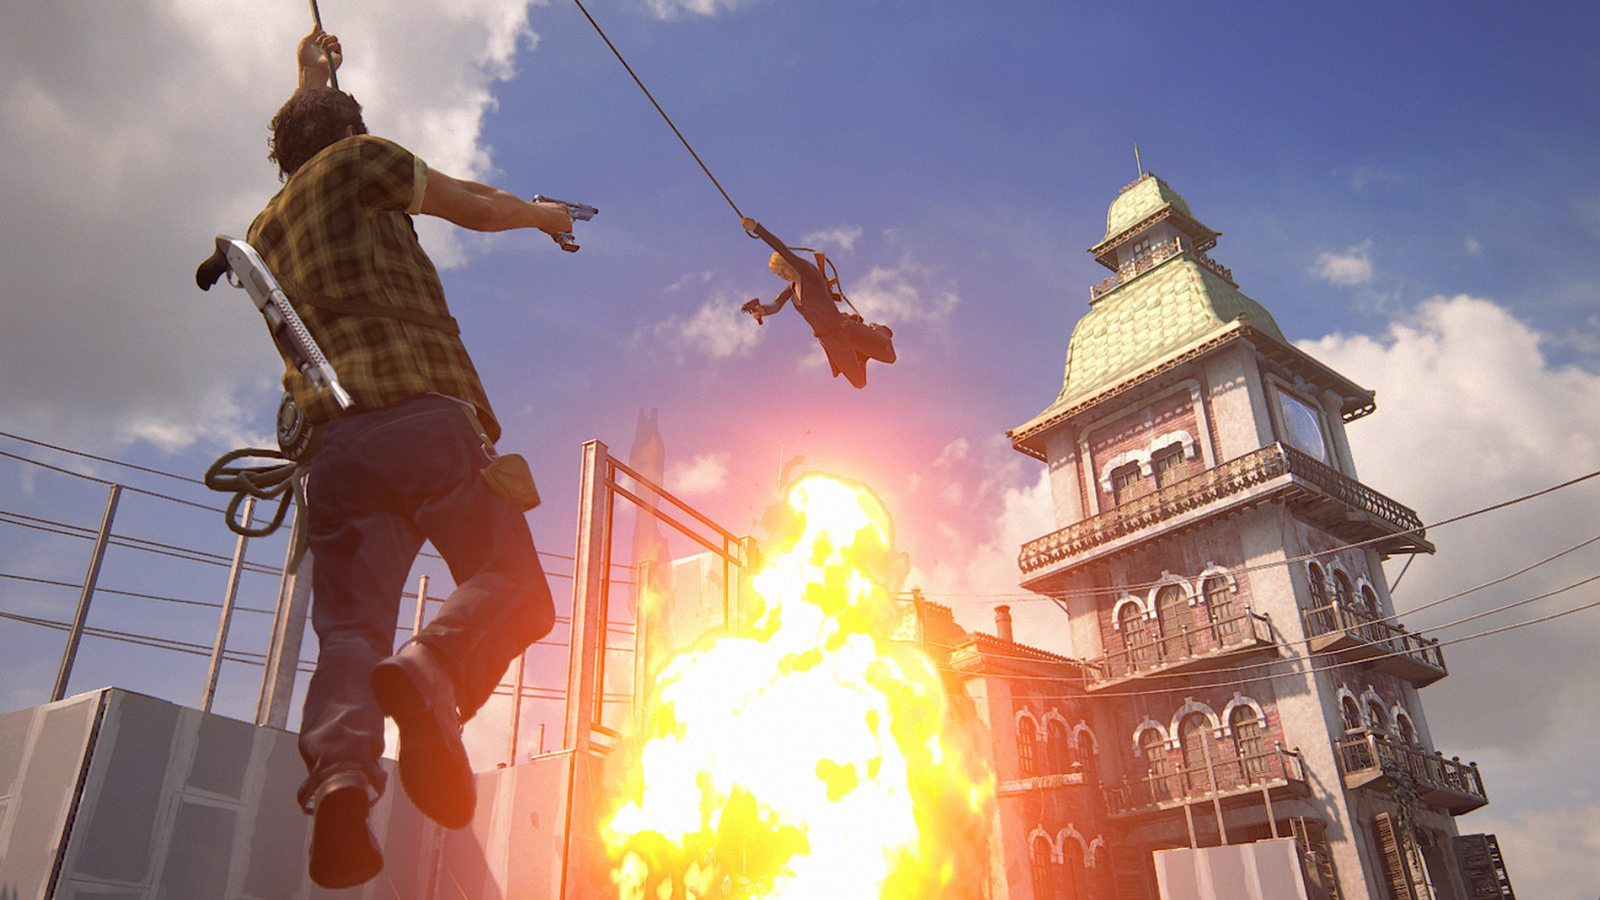 Uncharted 4 action